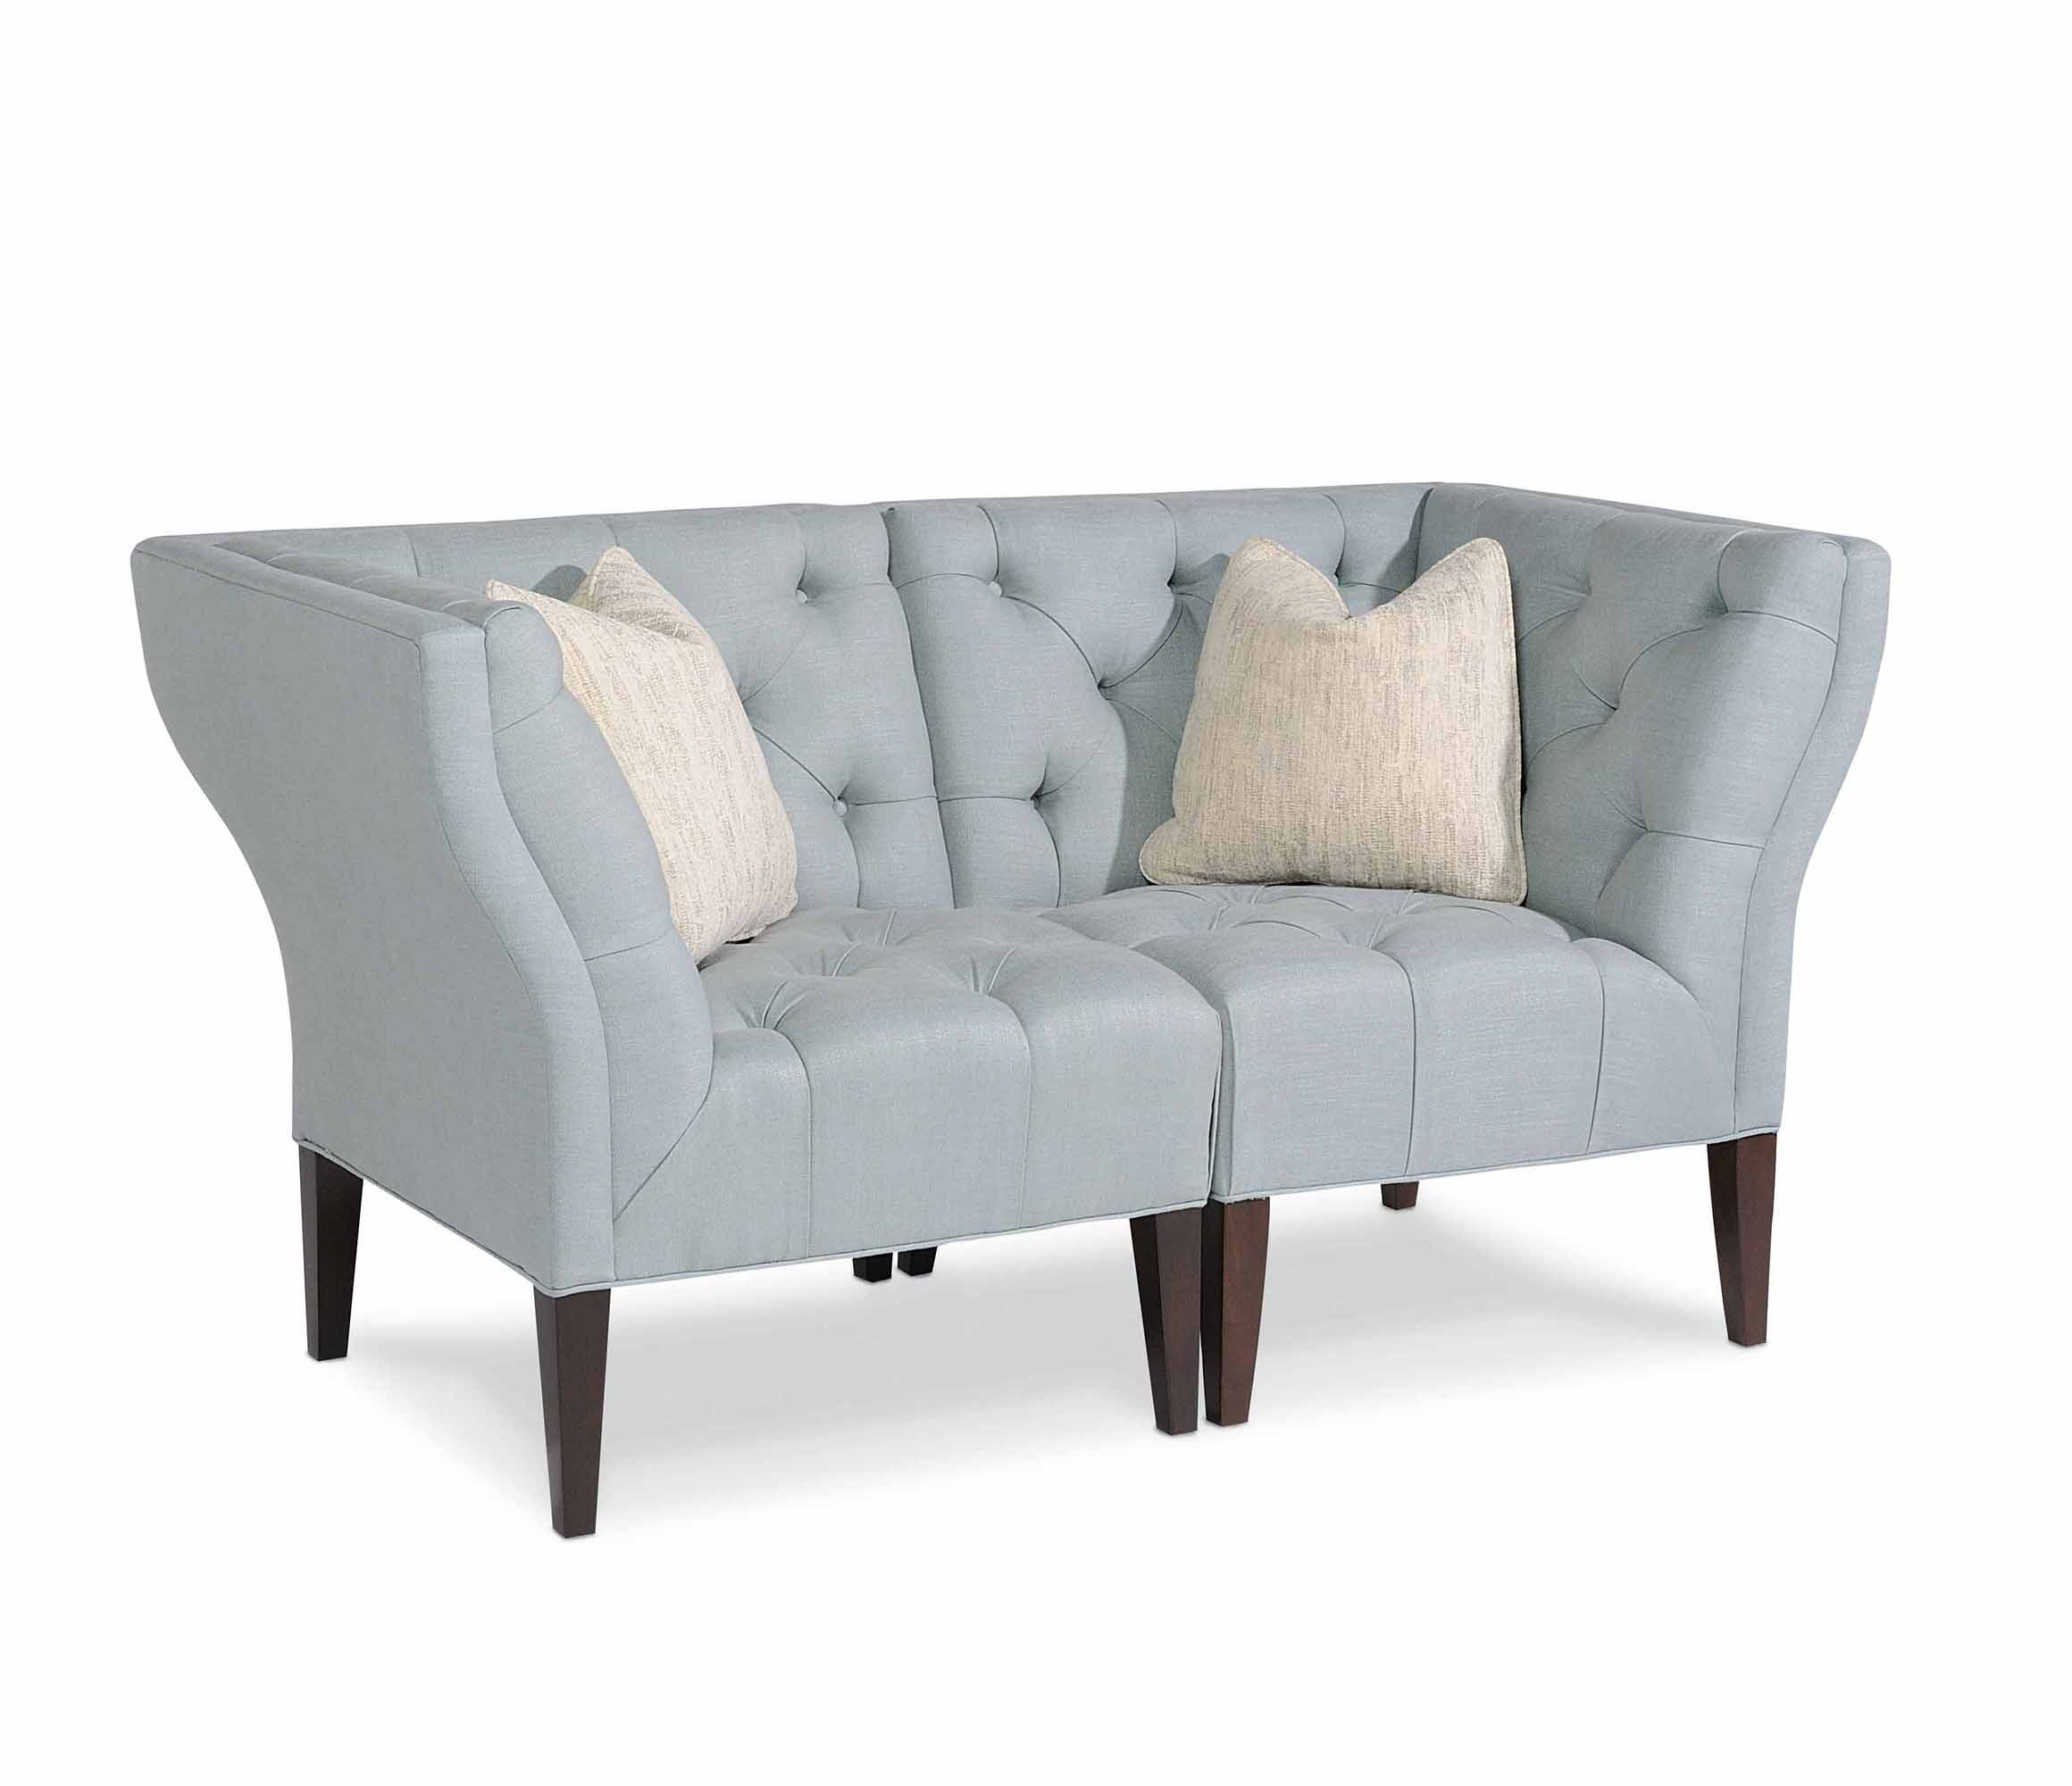 taylor king living room adair sectional 2315 sectional